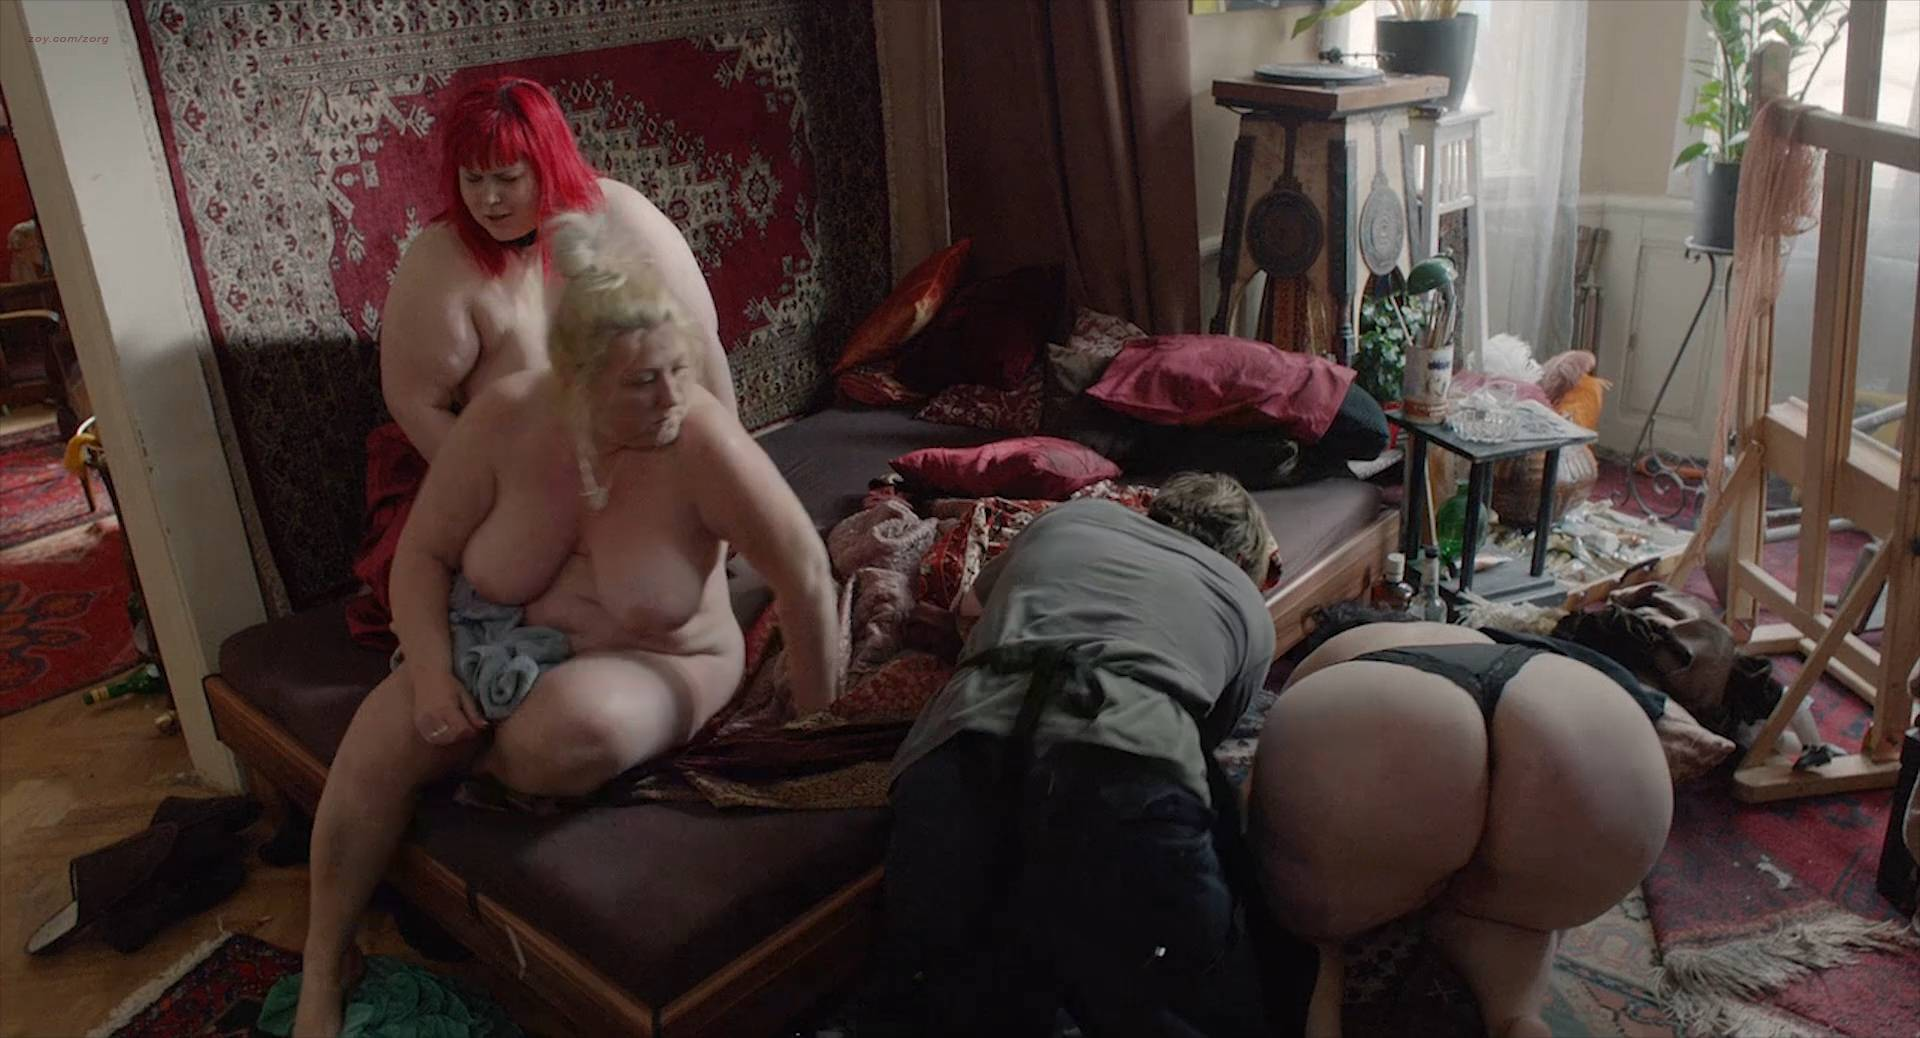 Marie Málková nude full frontal sex and others nude - Fotograf (CZ-2015) Web-DL hd1080p (3)